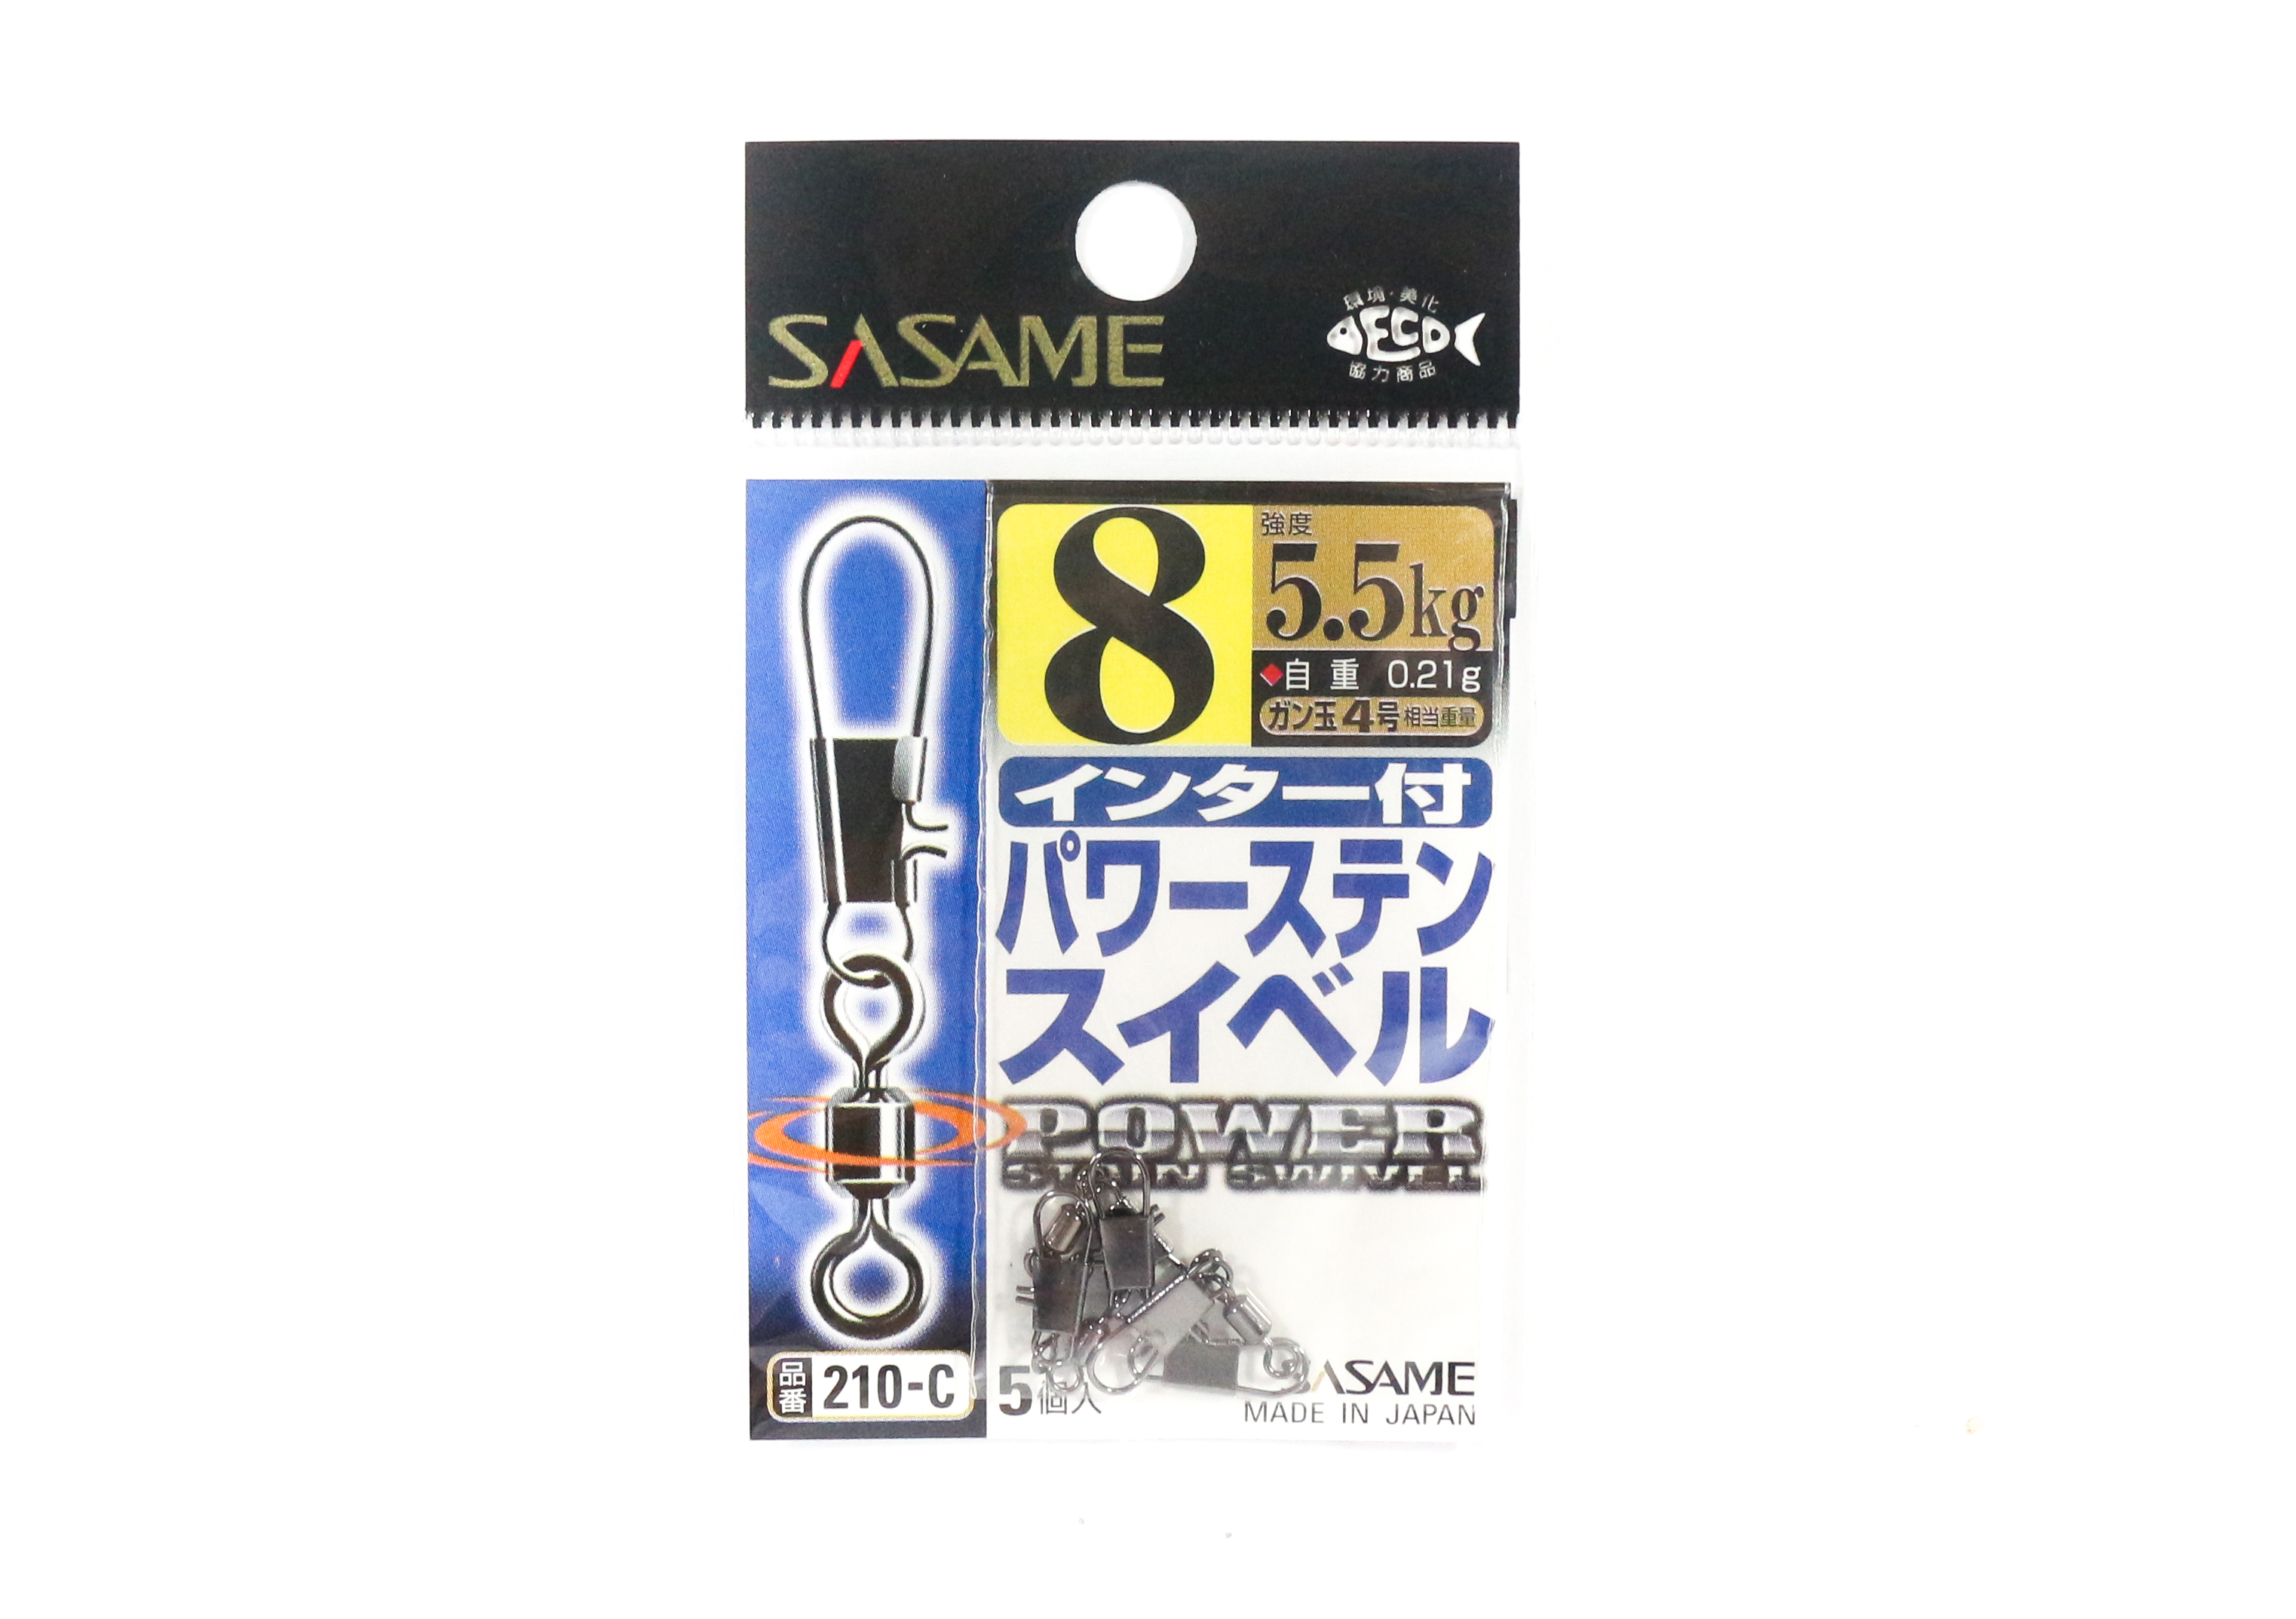 Sasame 210-C Power Stain Snap Swivel Smooth Spin Black Size 8 (1157)